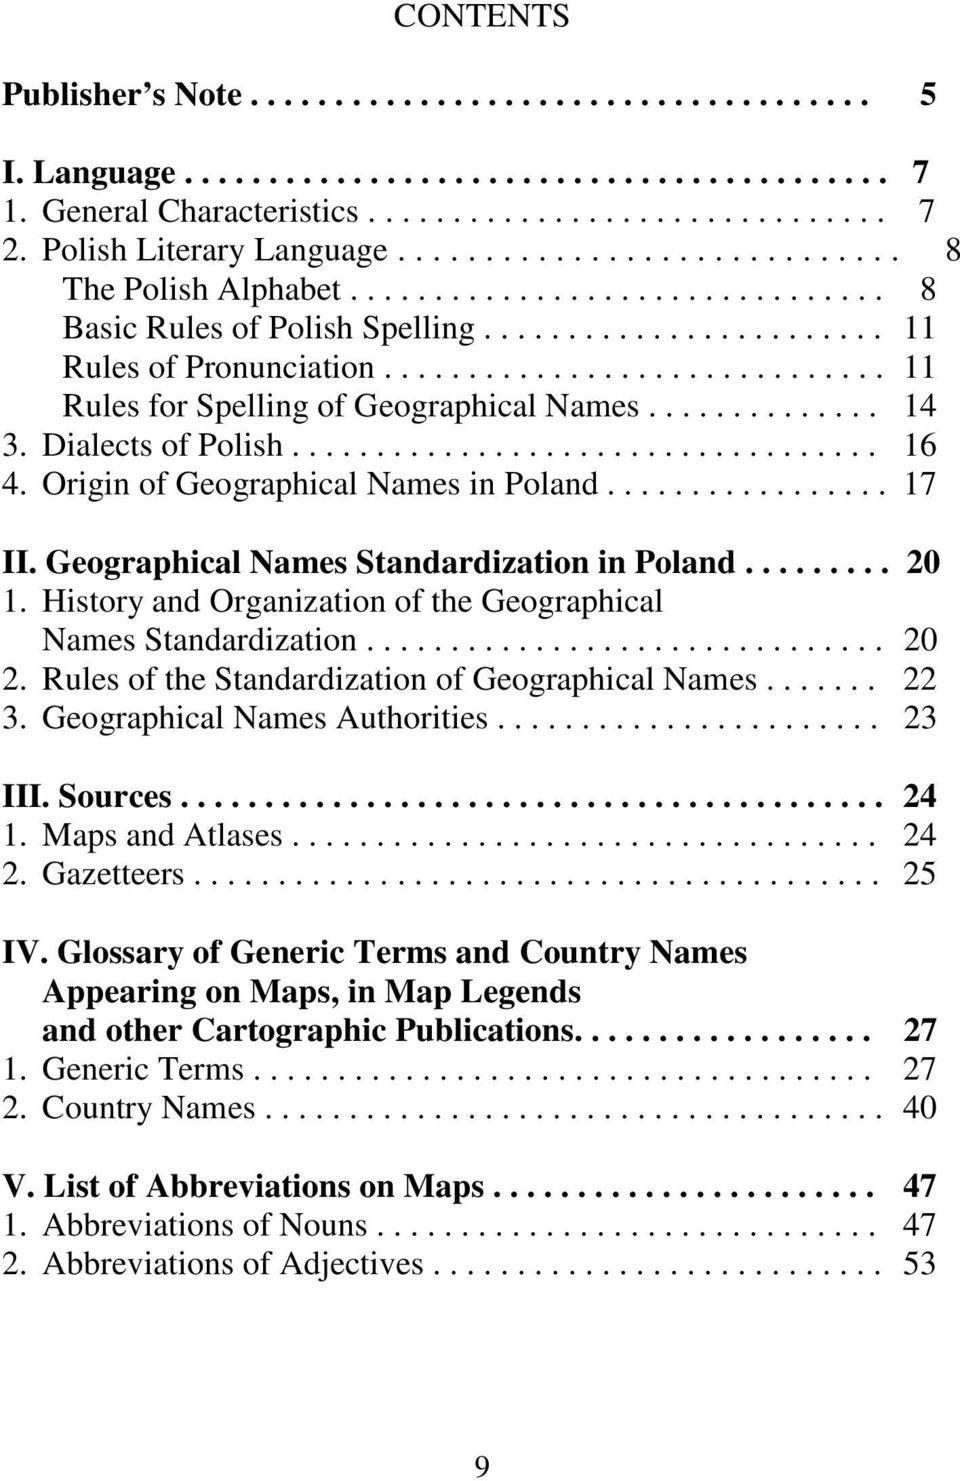 History and Organization of the Geographical NamesStandardization... 20 2. RulesoftheStandardizationofGeographicalNames... 22 3. Geographical Names Authorities... 23 III. Sources... 24 1.